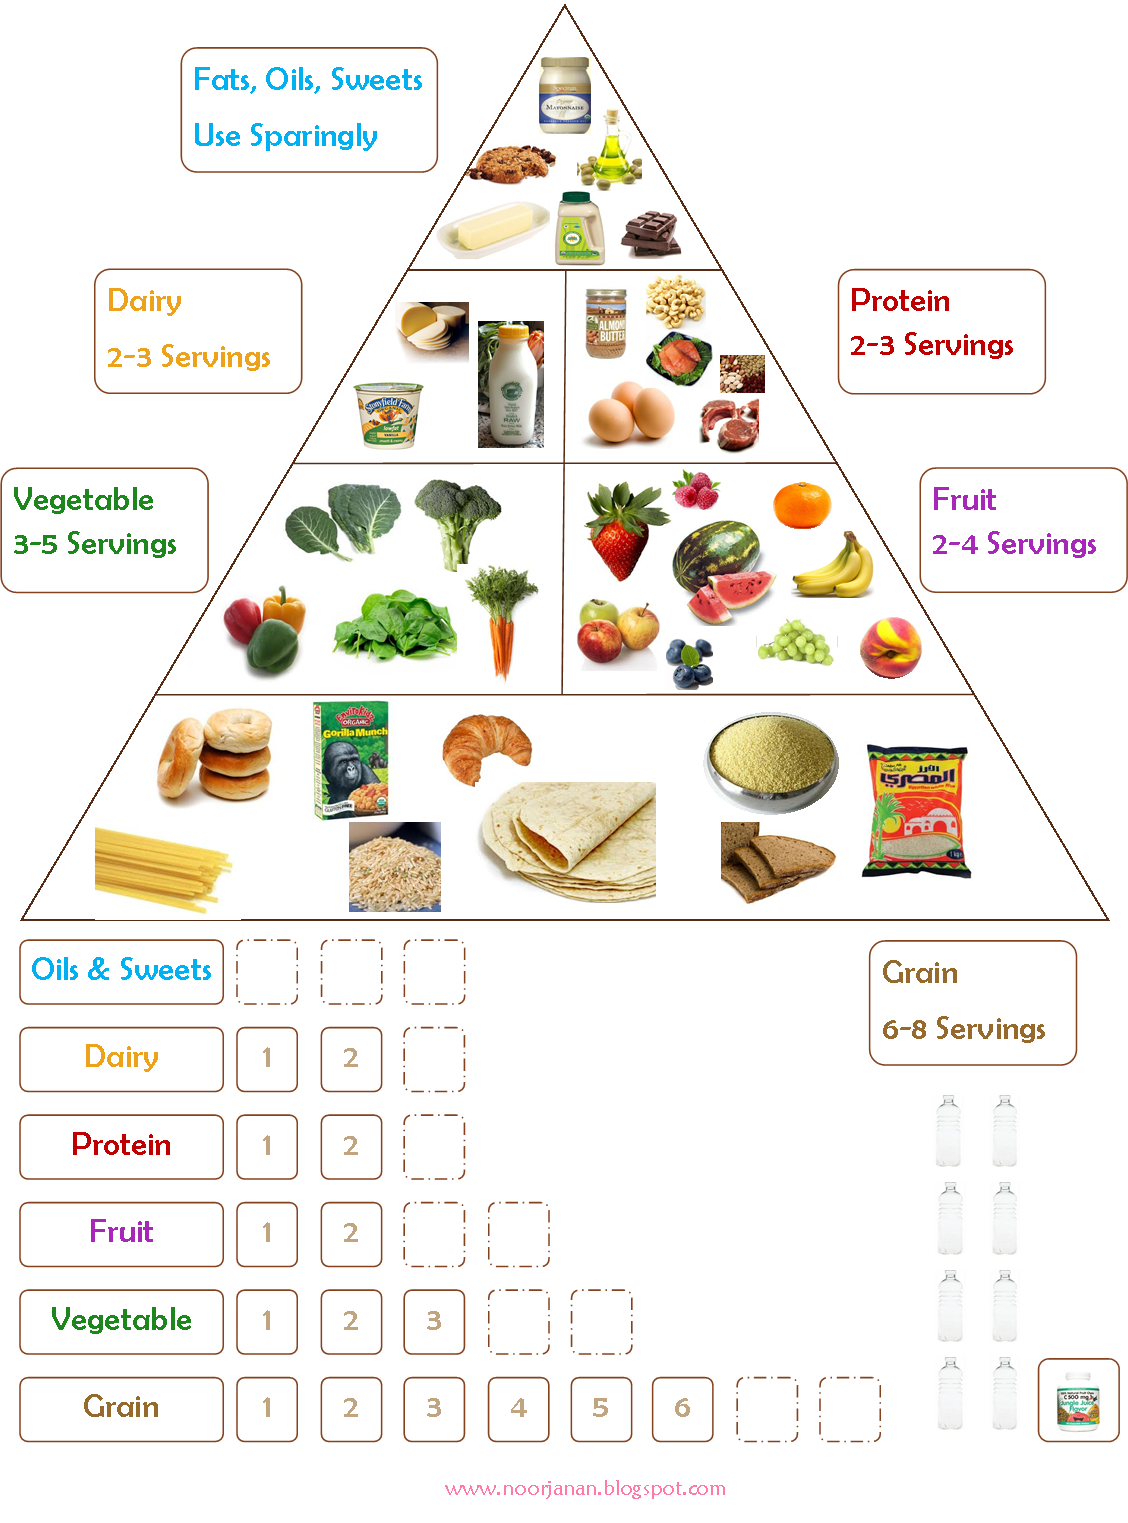 Pin By Alicia Cook On Illustrated Food In 2020 Food Pyramid Kids Healthy Food Chart Food Charts